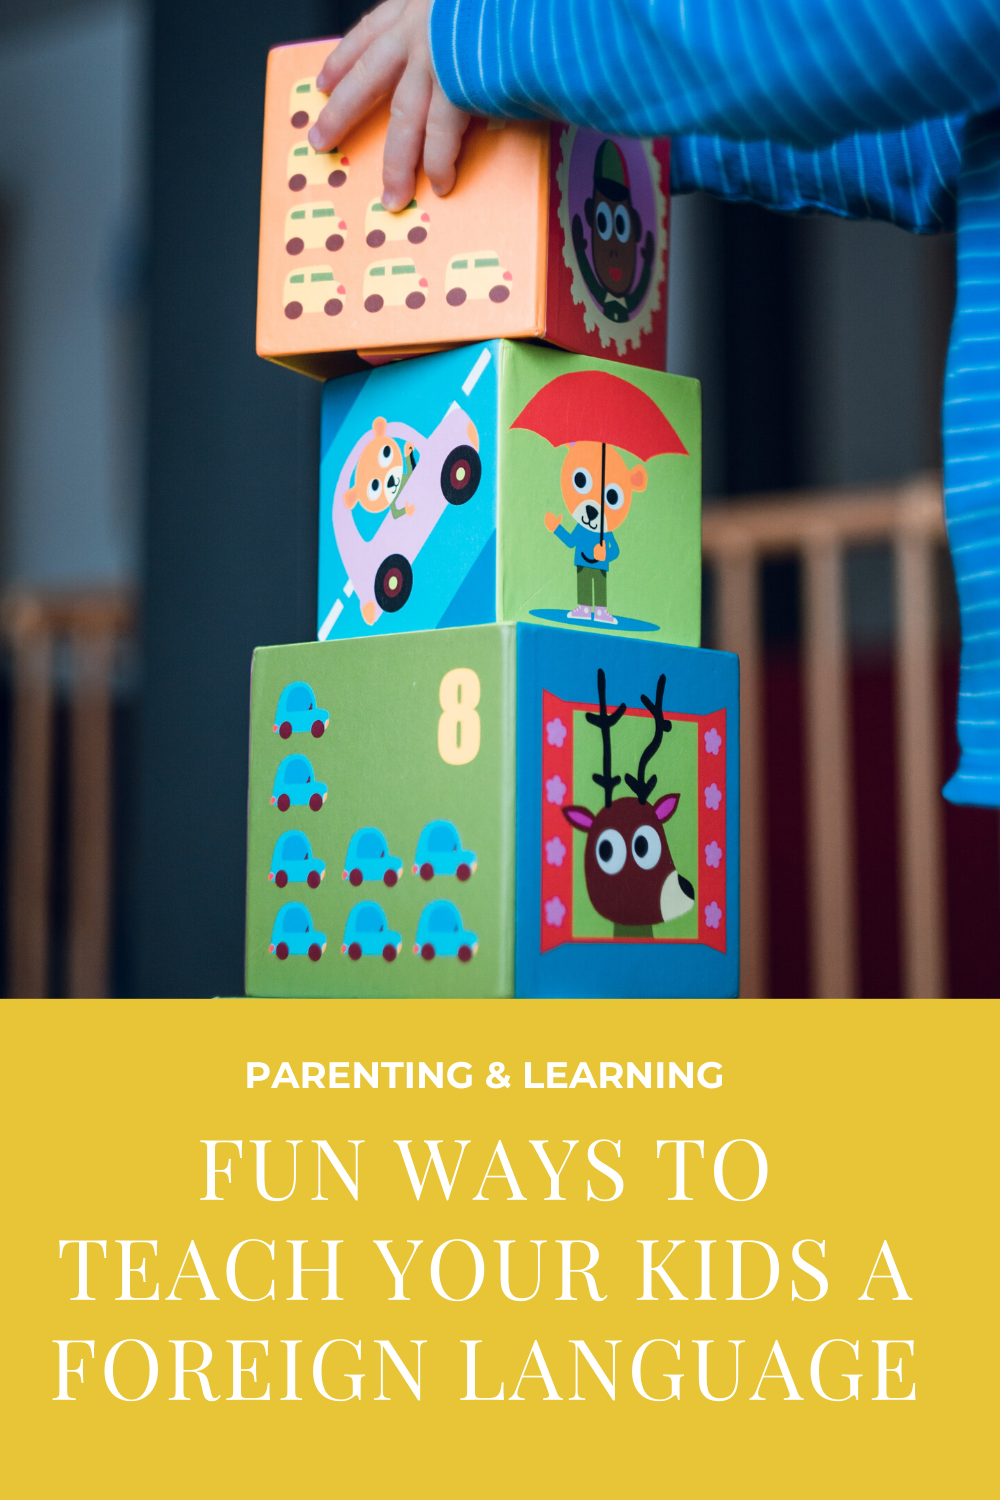 fun ways to teach kids a foreign language